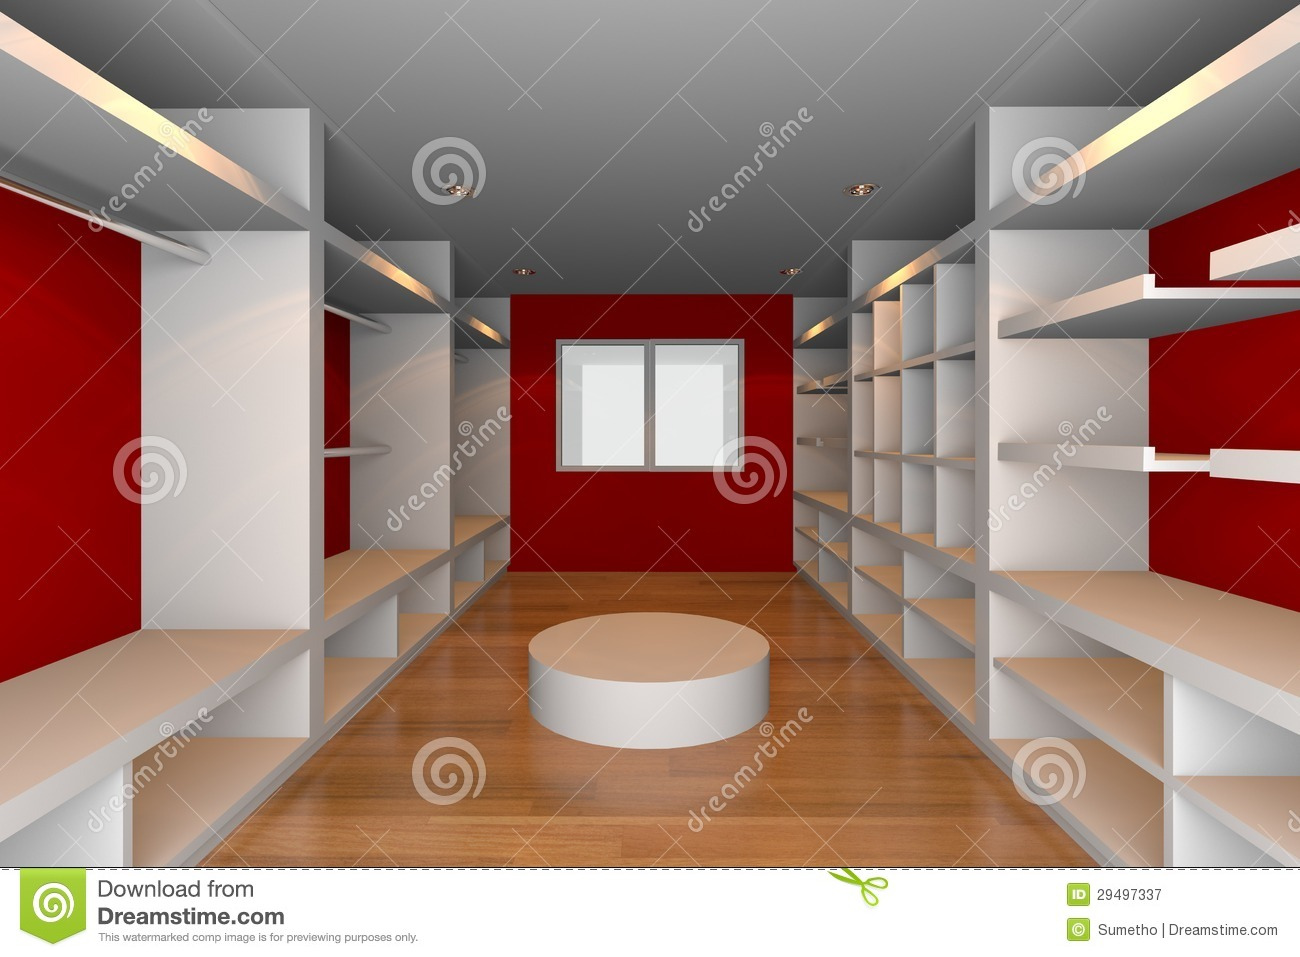 Modern Floor Lamp Ideas Red Walk-in Closet Royalty Free Stock Photography - Image